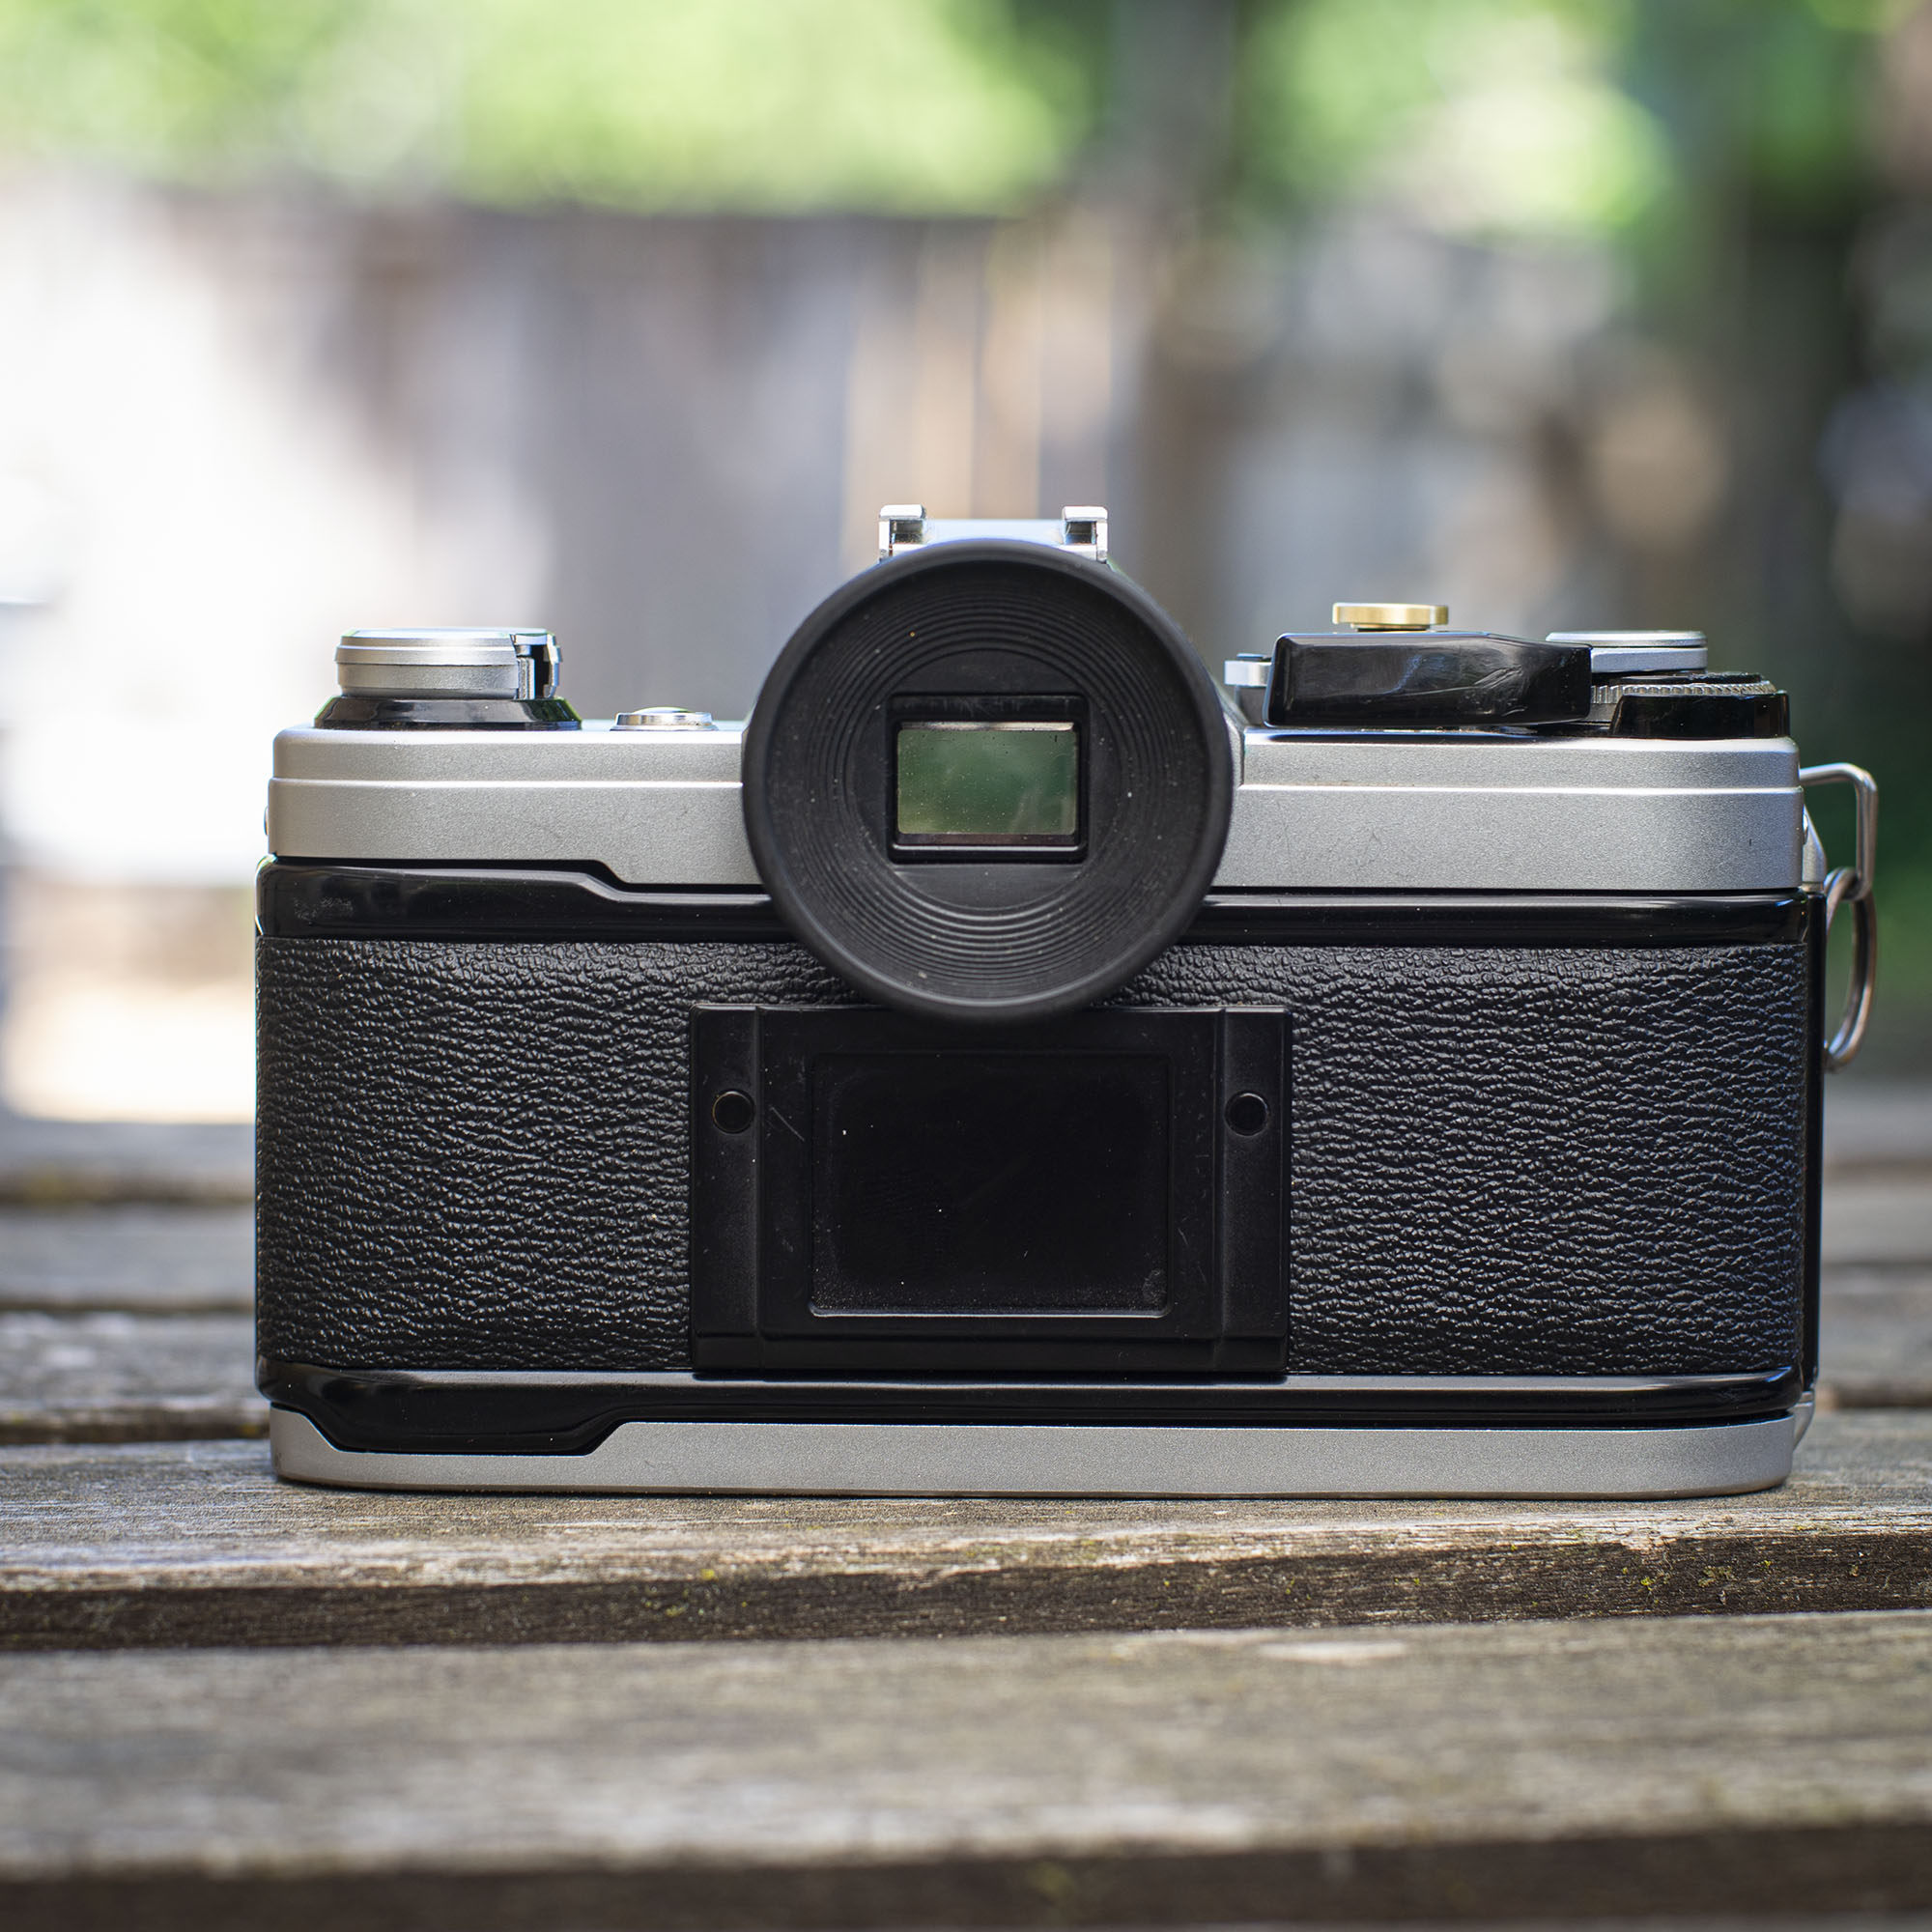 back view of the AE-1 camera